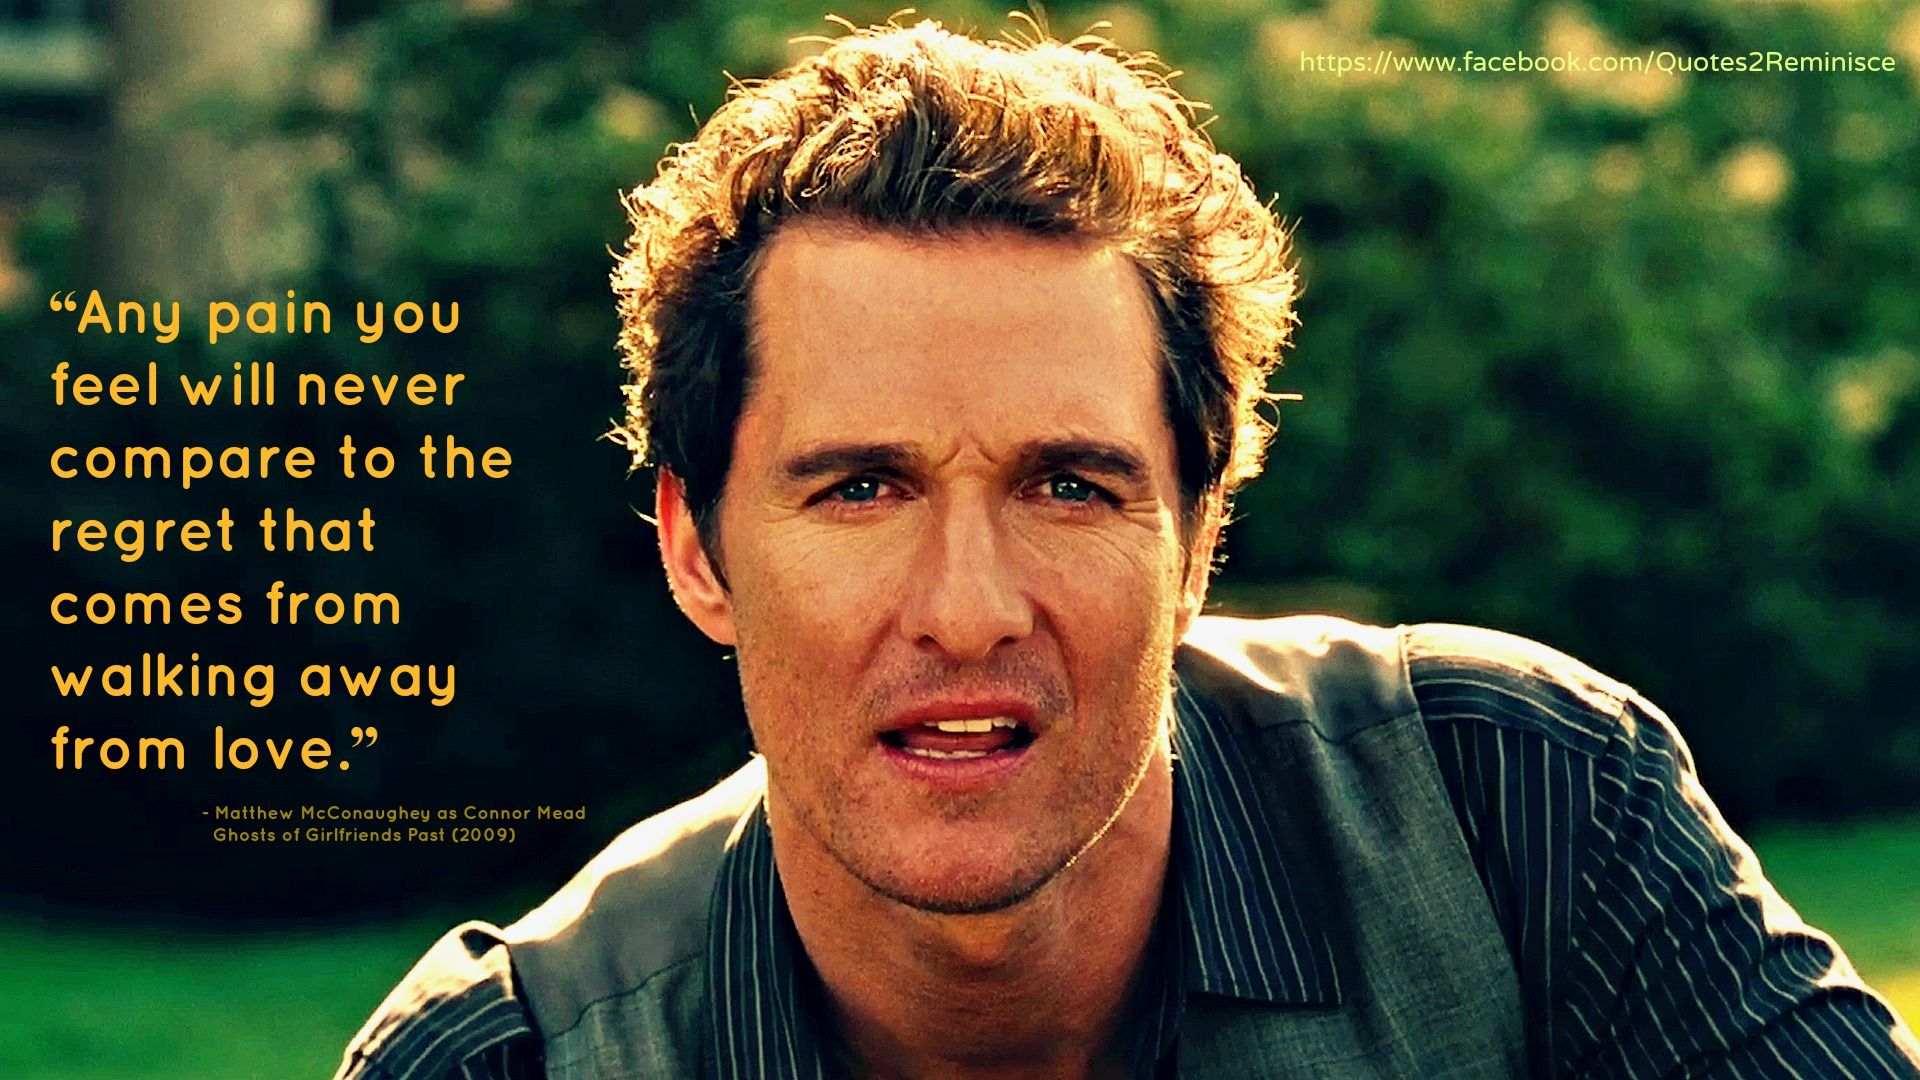 Ghostsofgirlfriendspast 2009 Matthewmcconaughey As Connor Mead Https Www Facebook Com Quotes2rem How Are You Feeling Walking Away From Love Movie Quotes